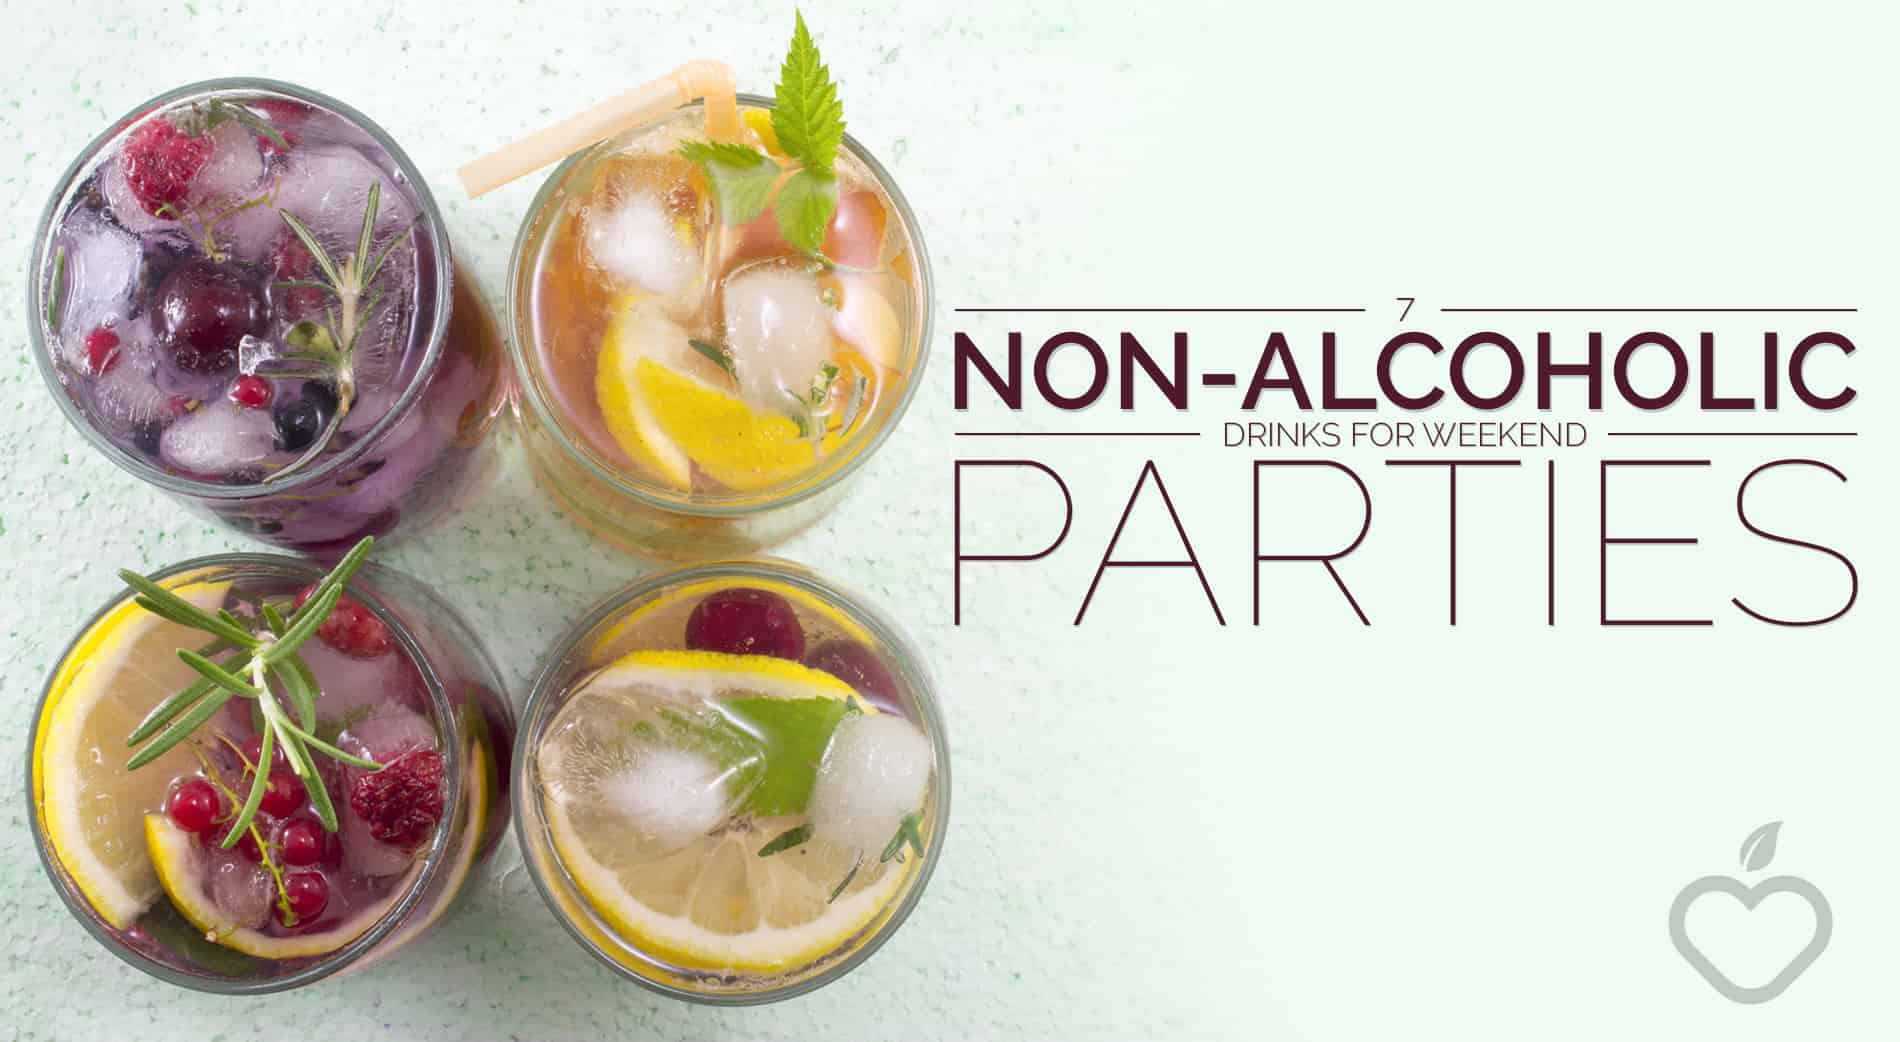 Non Alcoholic Drinks Image Design 1 - 7 Non-Alcoholic Drinks for Weekend Parties